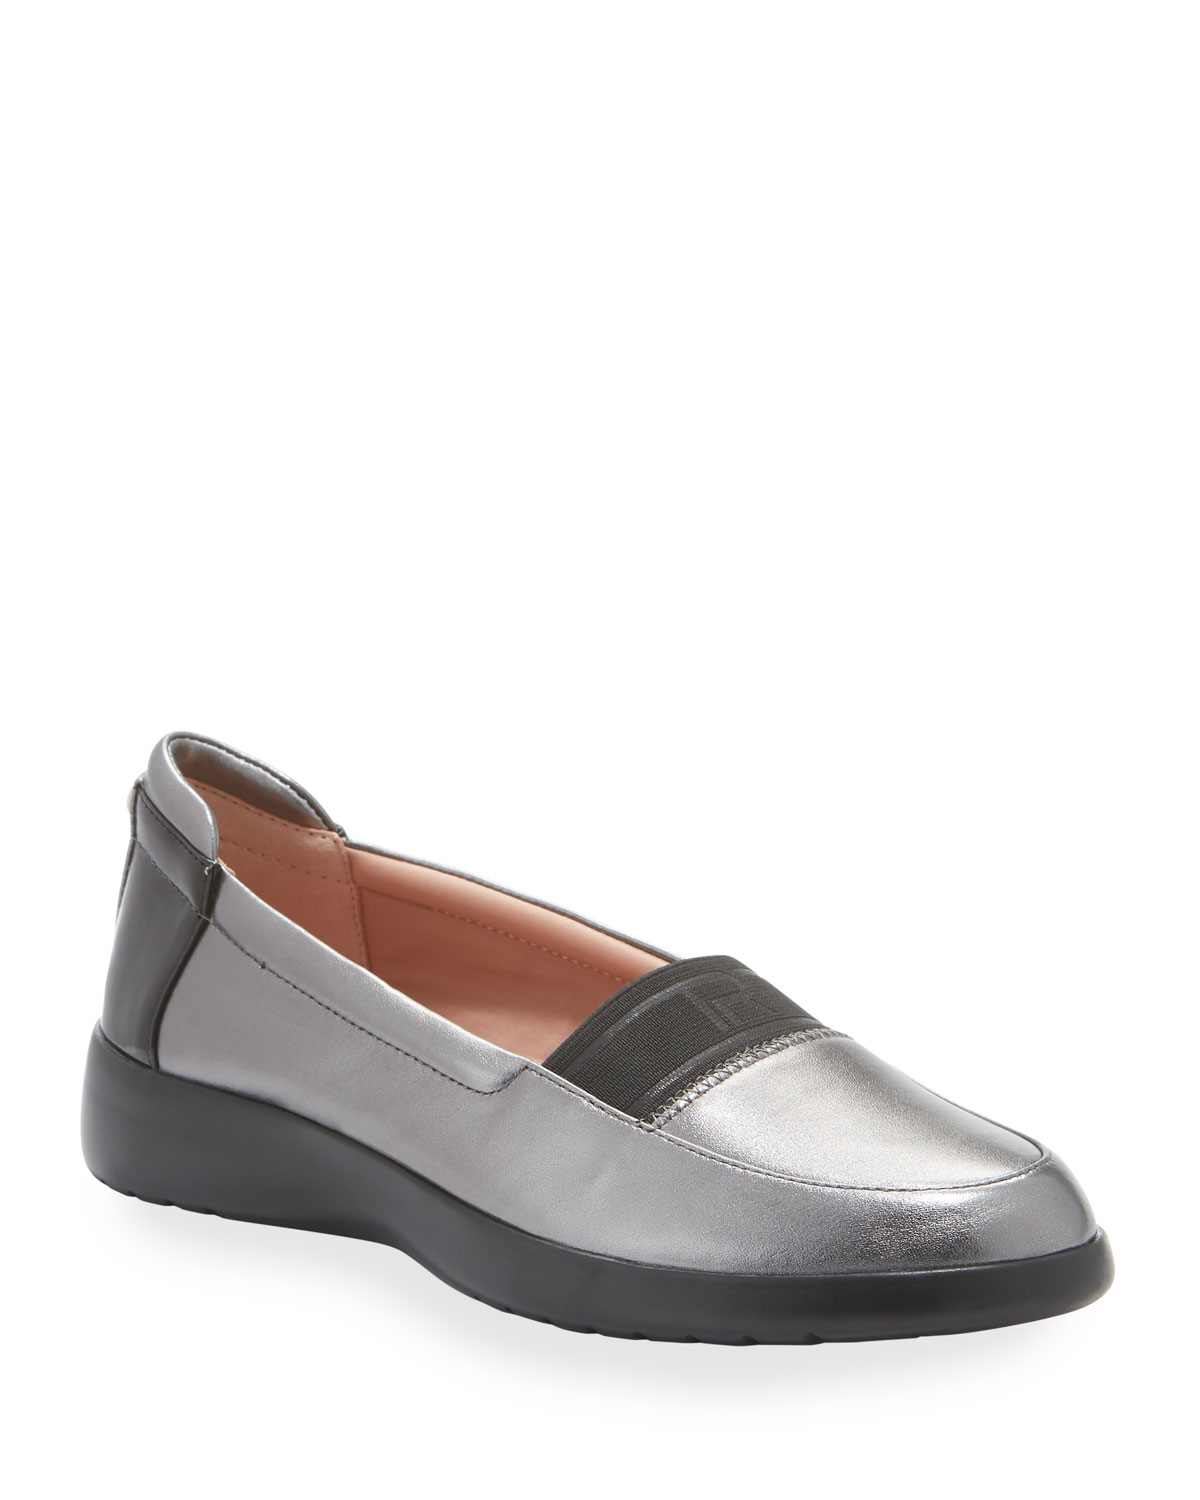 Taryn Rose Flats TIFFANY WEATHERPROOF METALLIC LEATHER COMFORT SLIP-ON FLATS